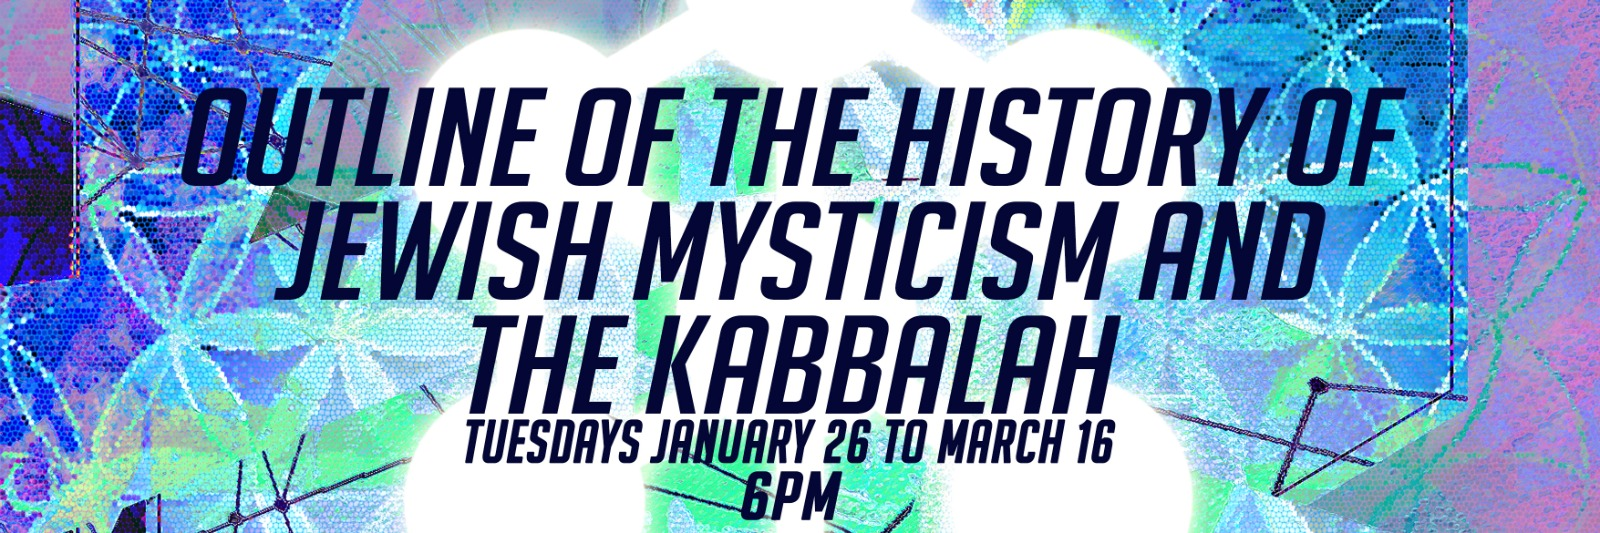 Banner Image for Outline of the History of Jewish Mysticism and the Kabbalah